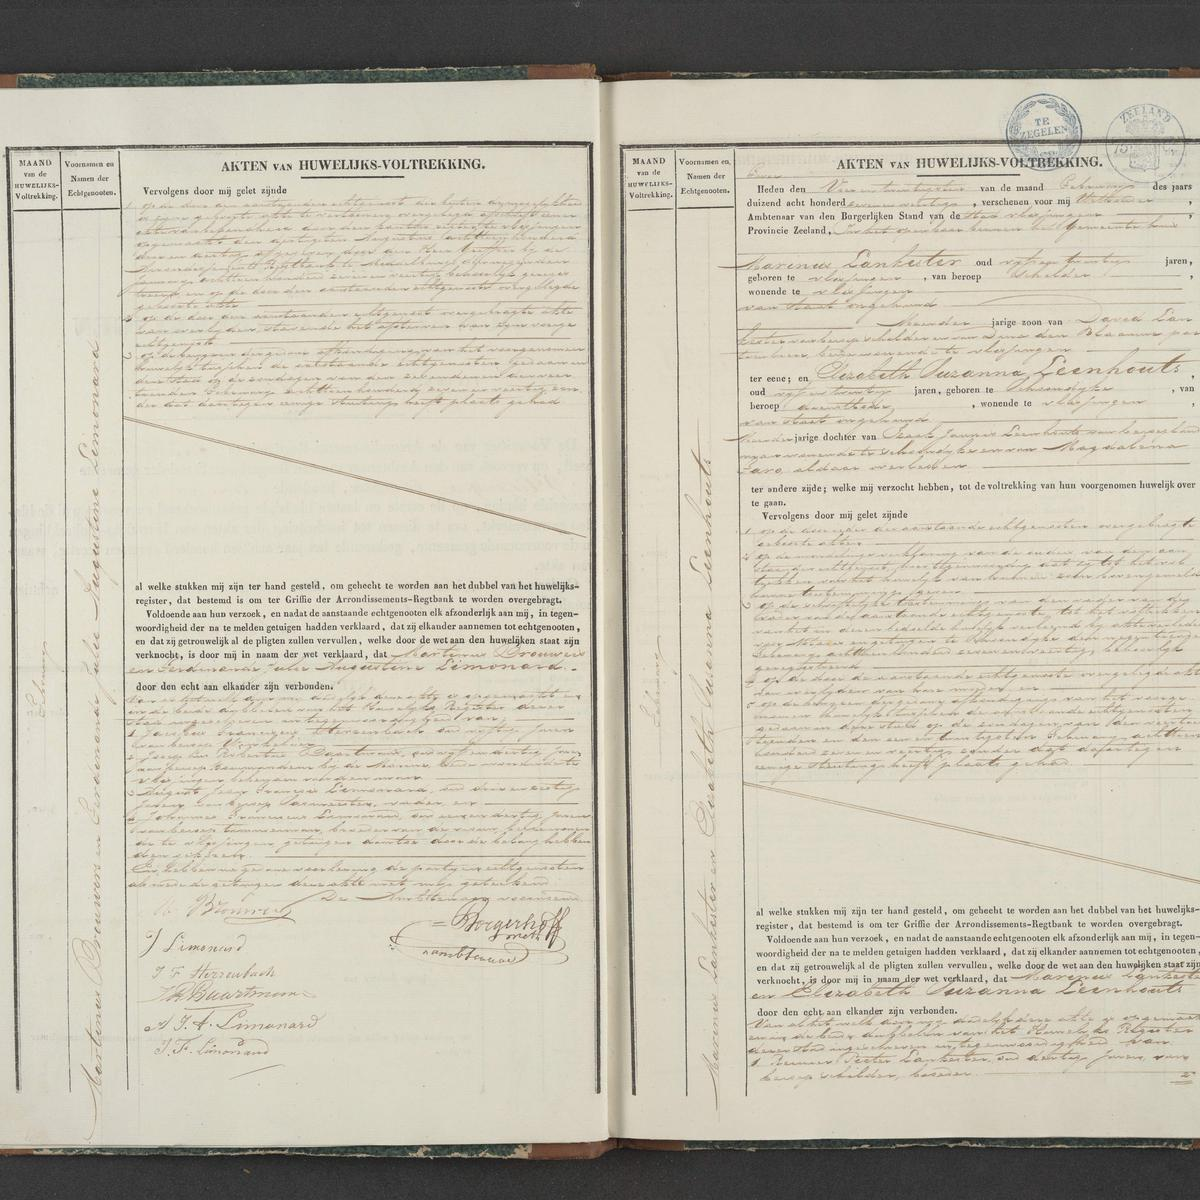 Civil registry of marriages, Vlissingen, 1847, records 1-2